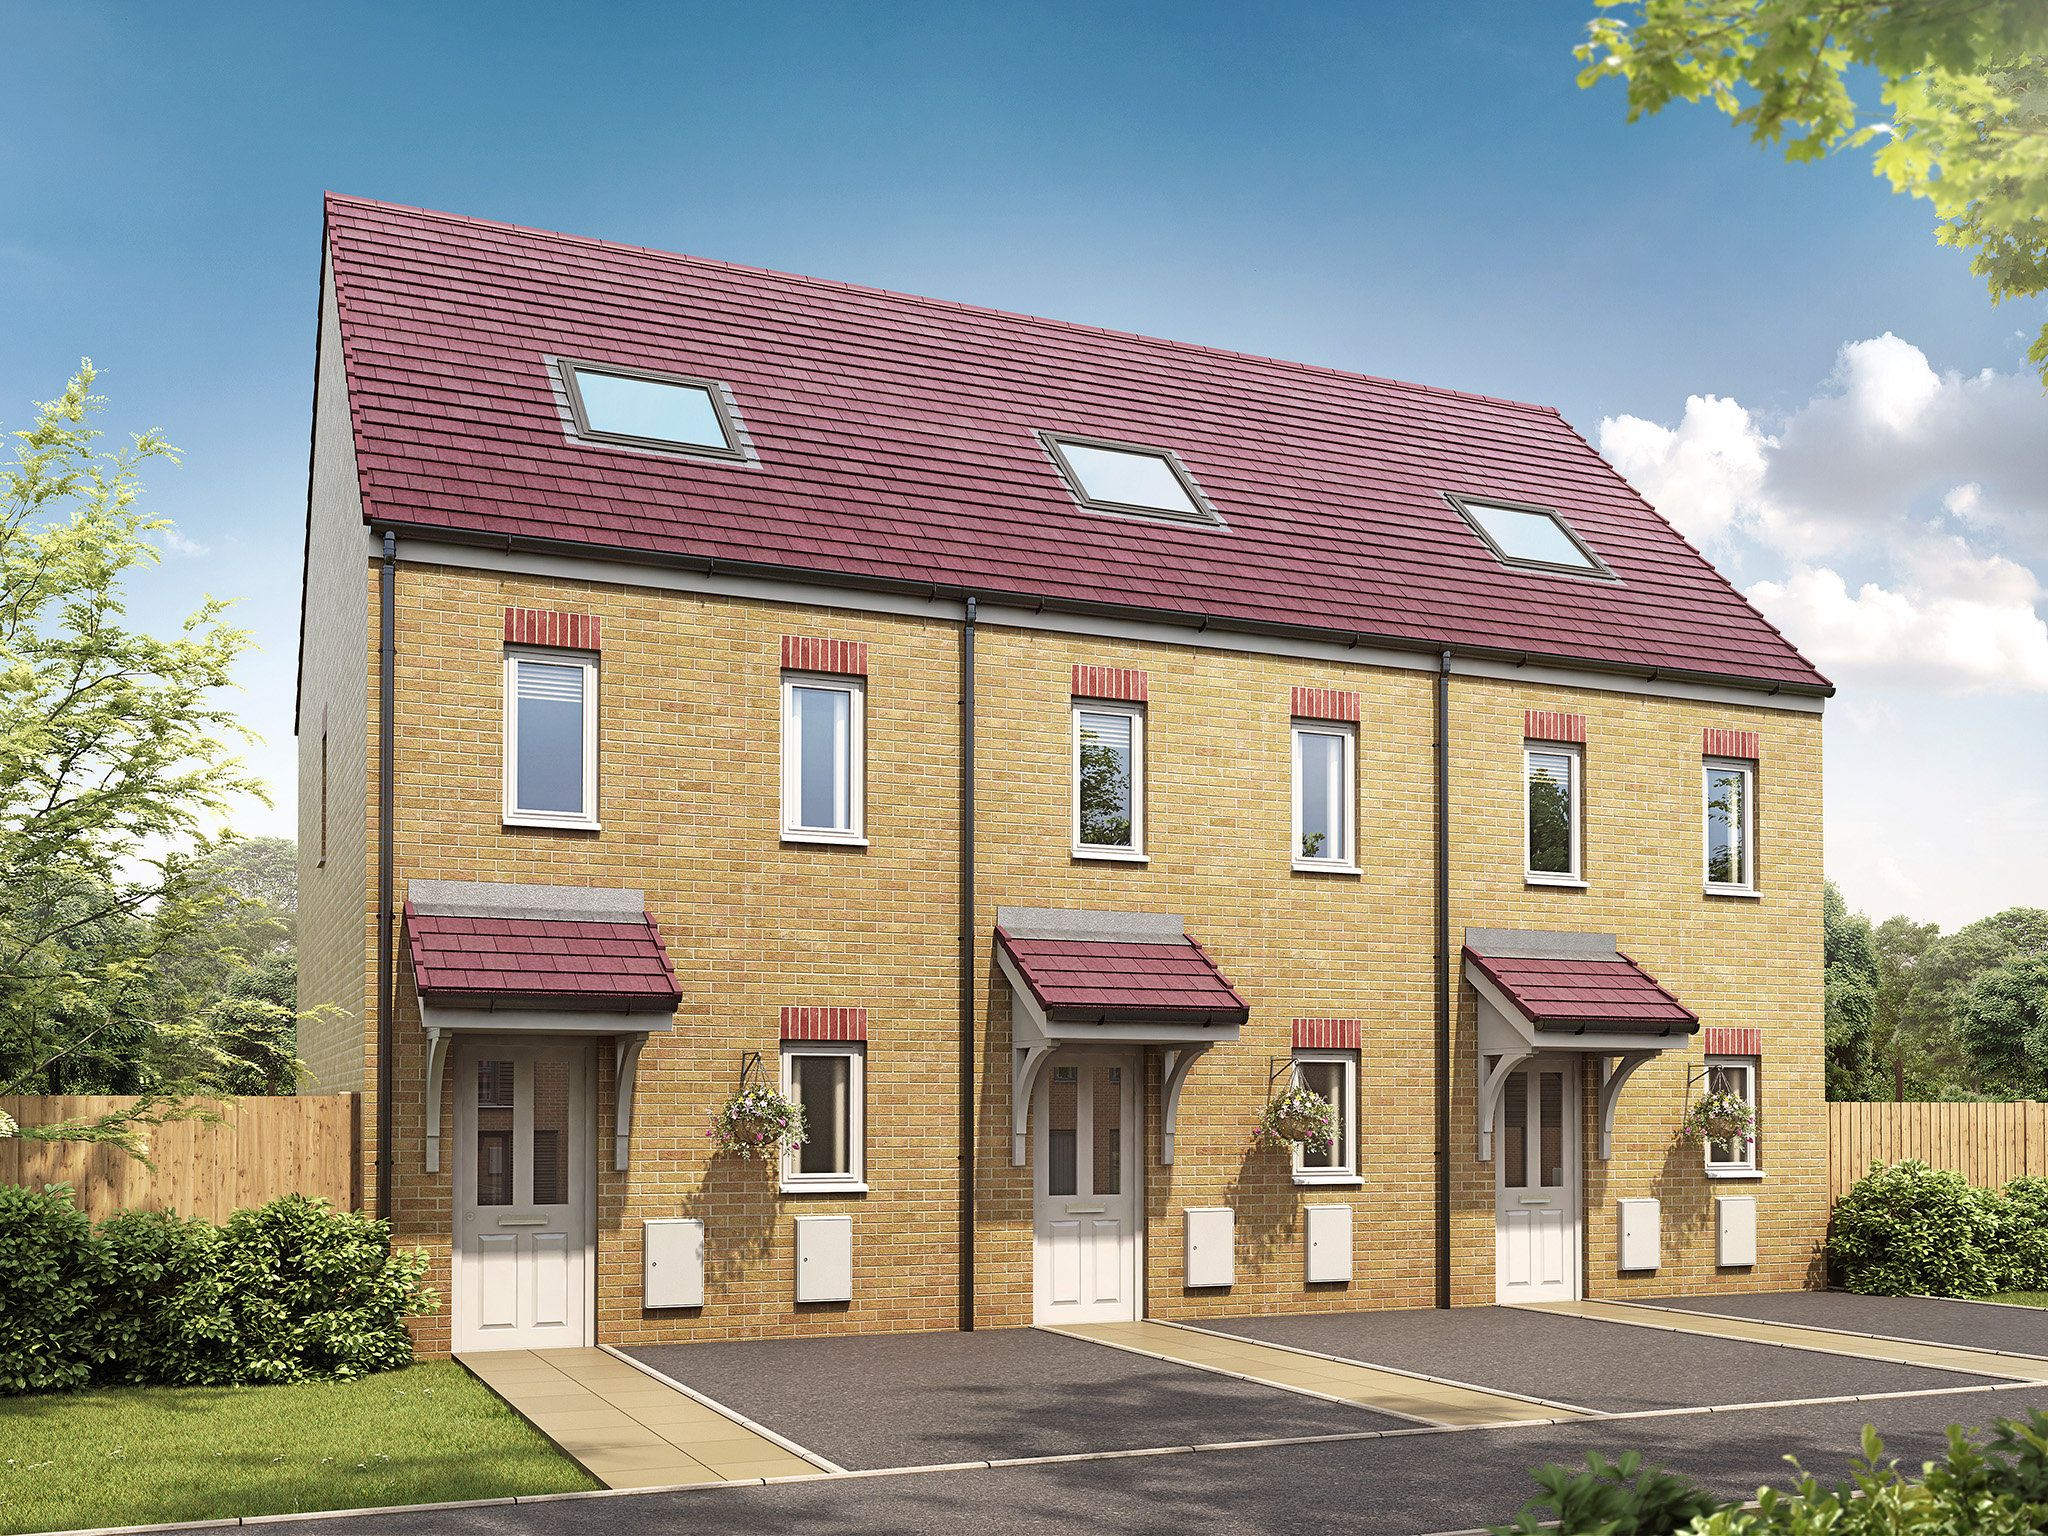 Bluebell Meadow development image 1 of 1